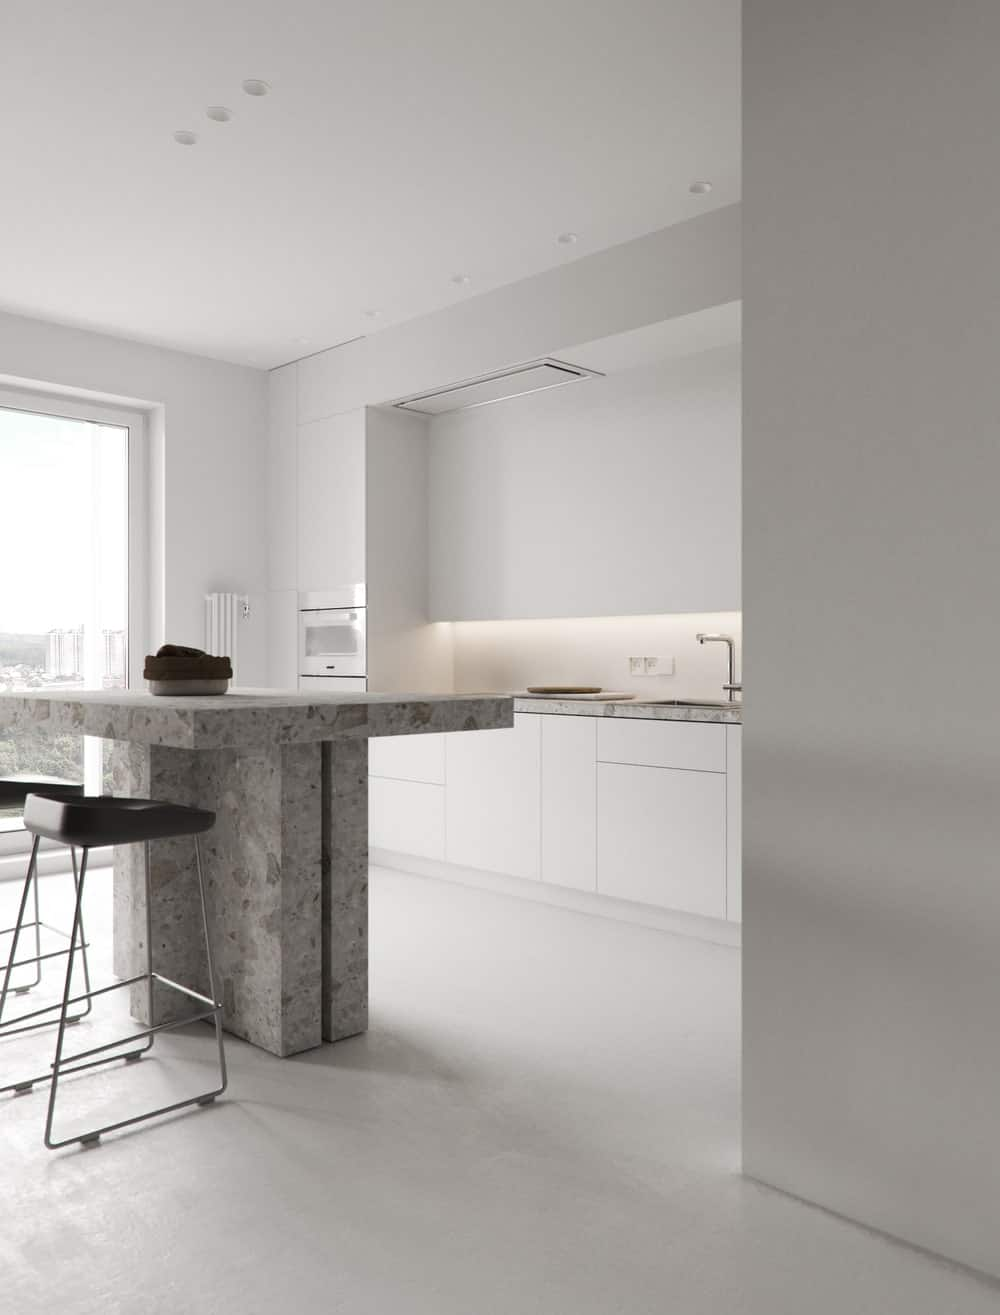 The white tones of the whole kitchen makes the gray marble kitchen island stand out.